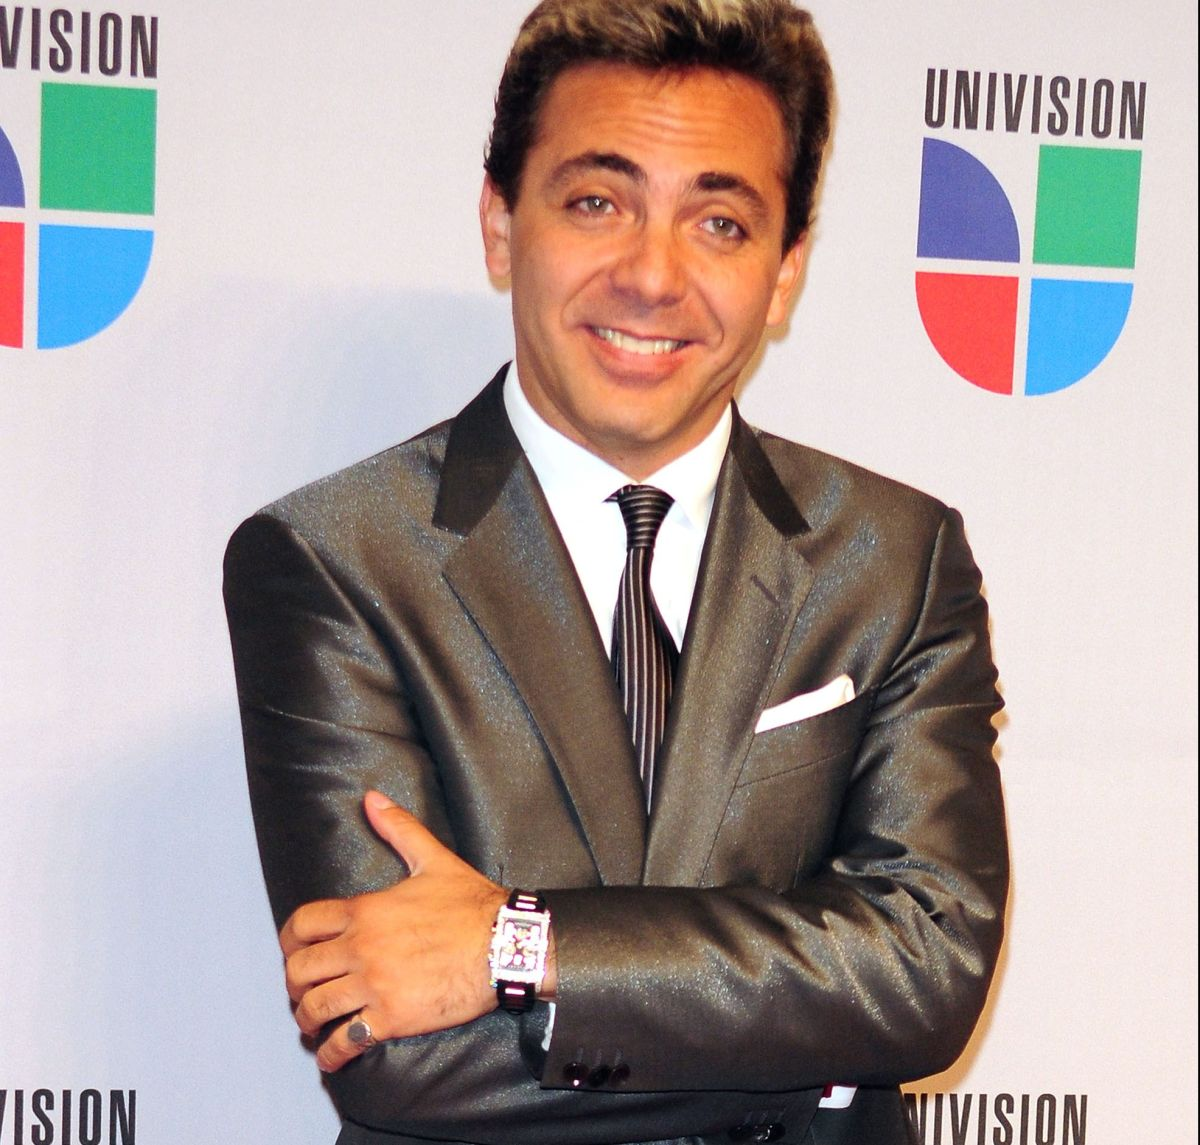 Cristian Castro takes a bottle and very proudly shares it on his social networks | The State